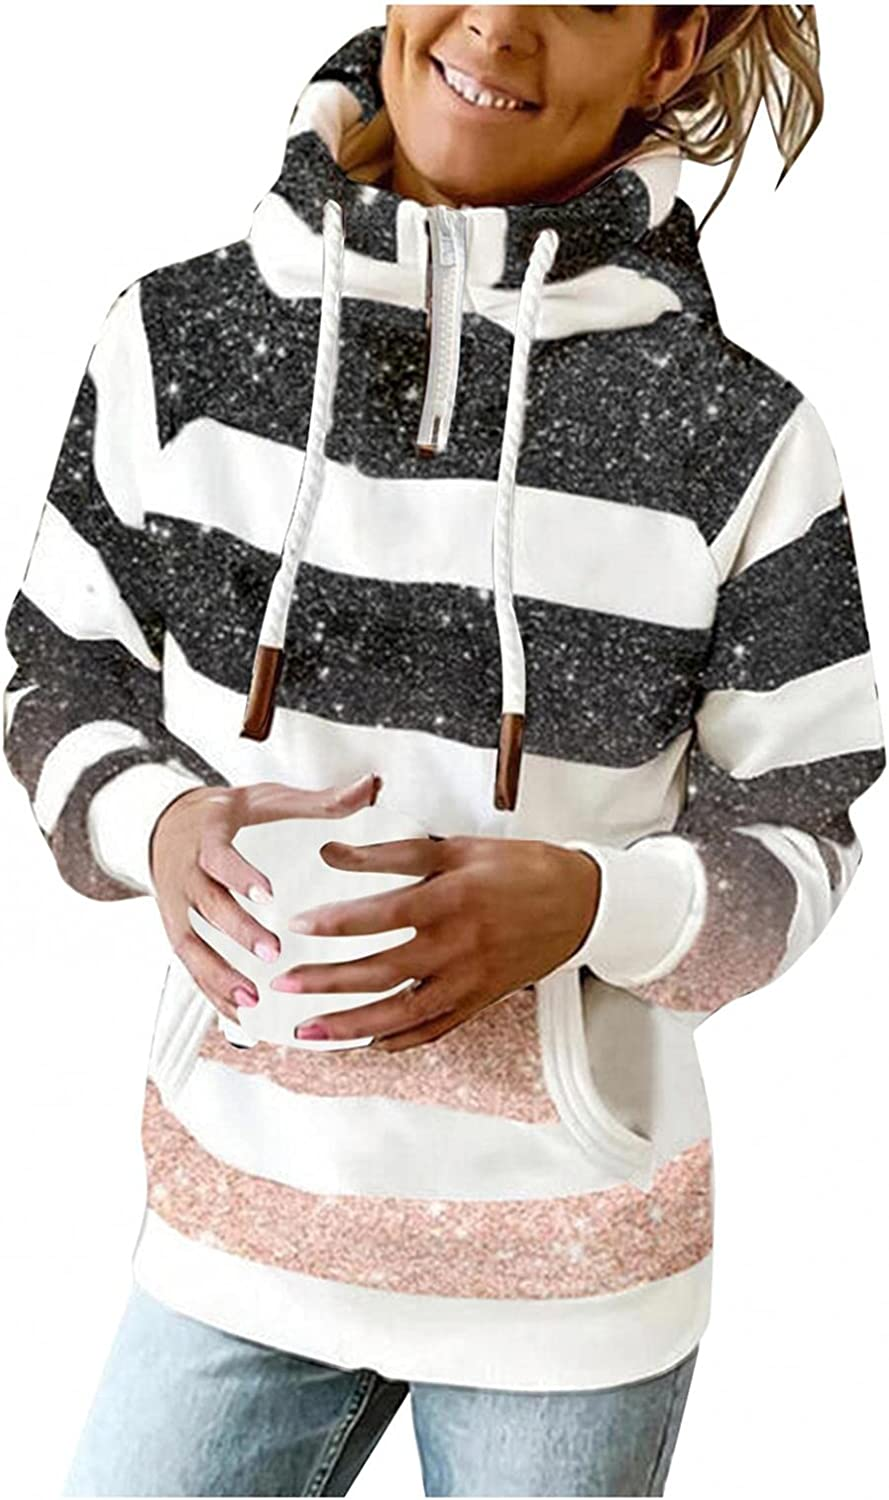 FABIURT Hoodies for Women, Womens 1/4 Zip Up High-Necked Hoodies Fashion Striped Casual Loose Fit Long Sleeve Tops Pullover